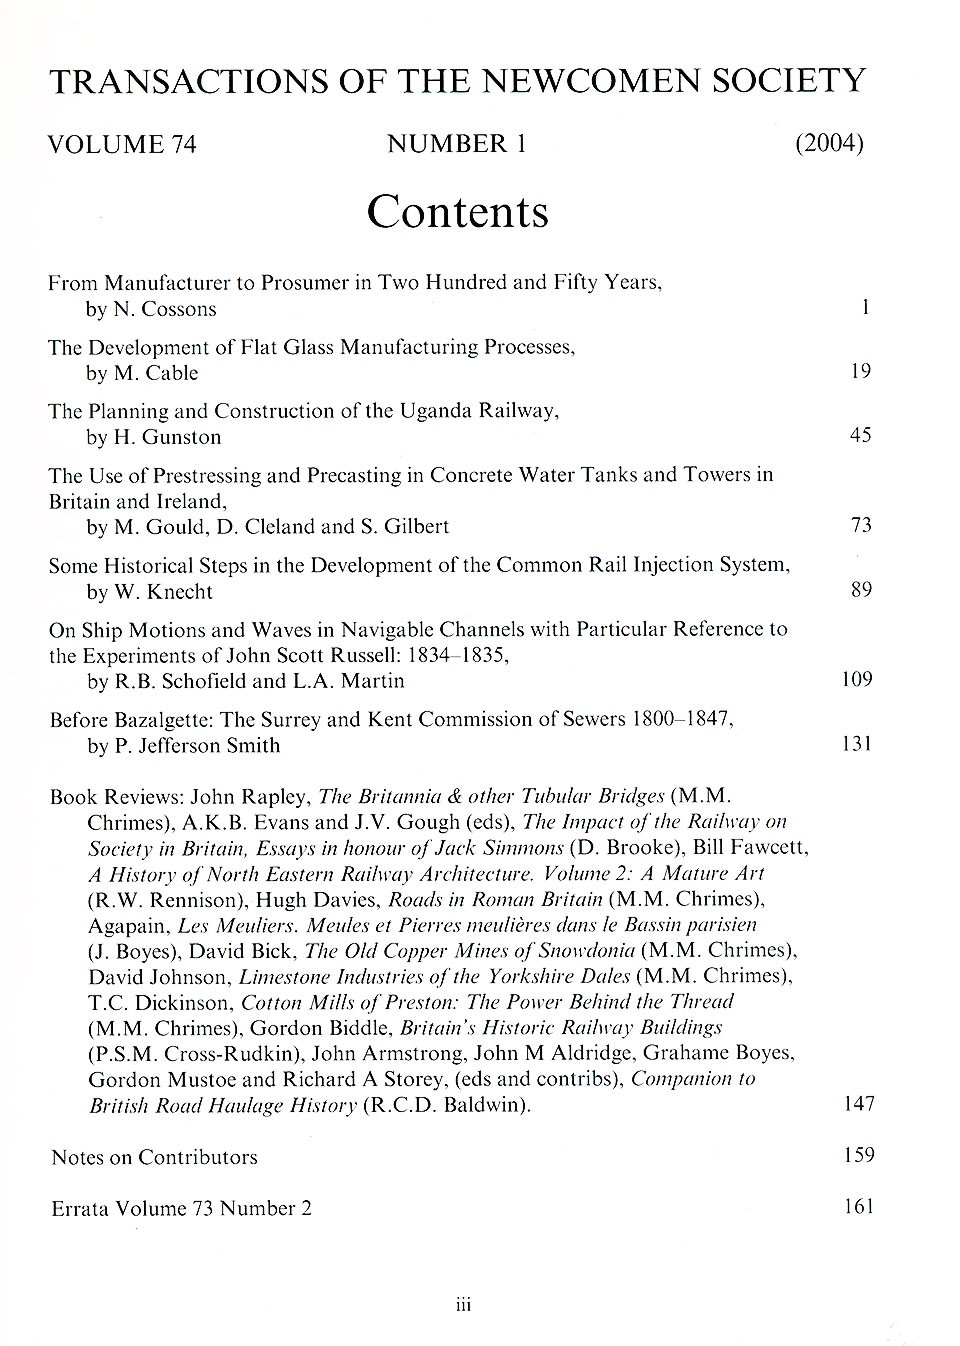 The Journal - V74 No1 2004 - contents